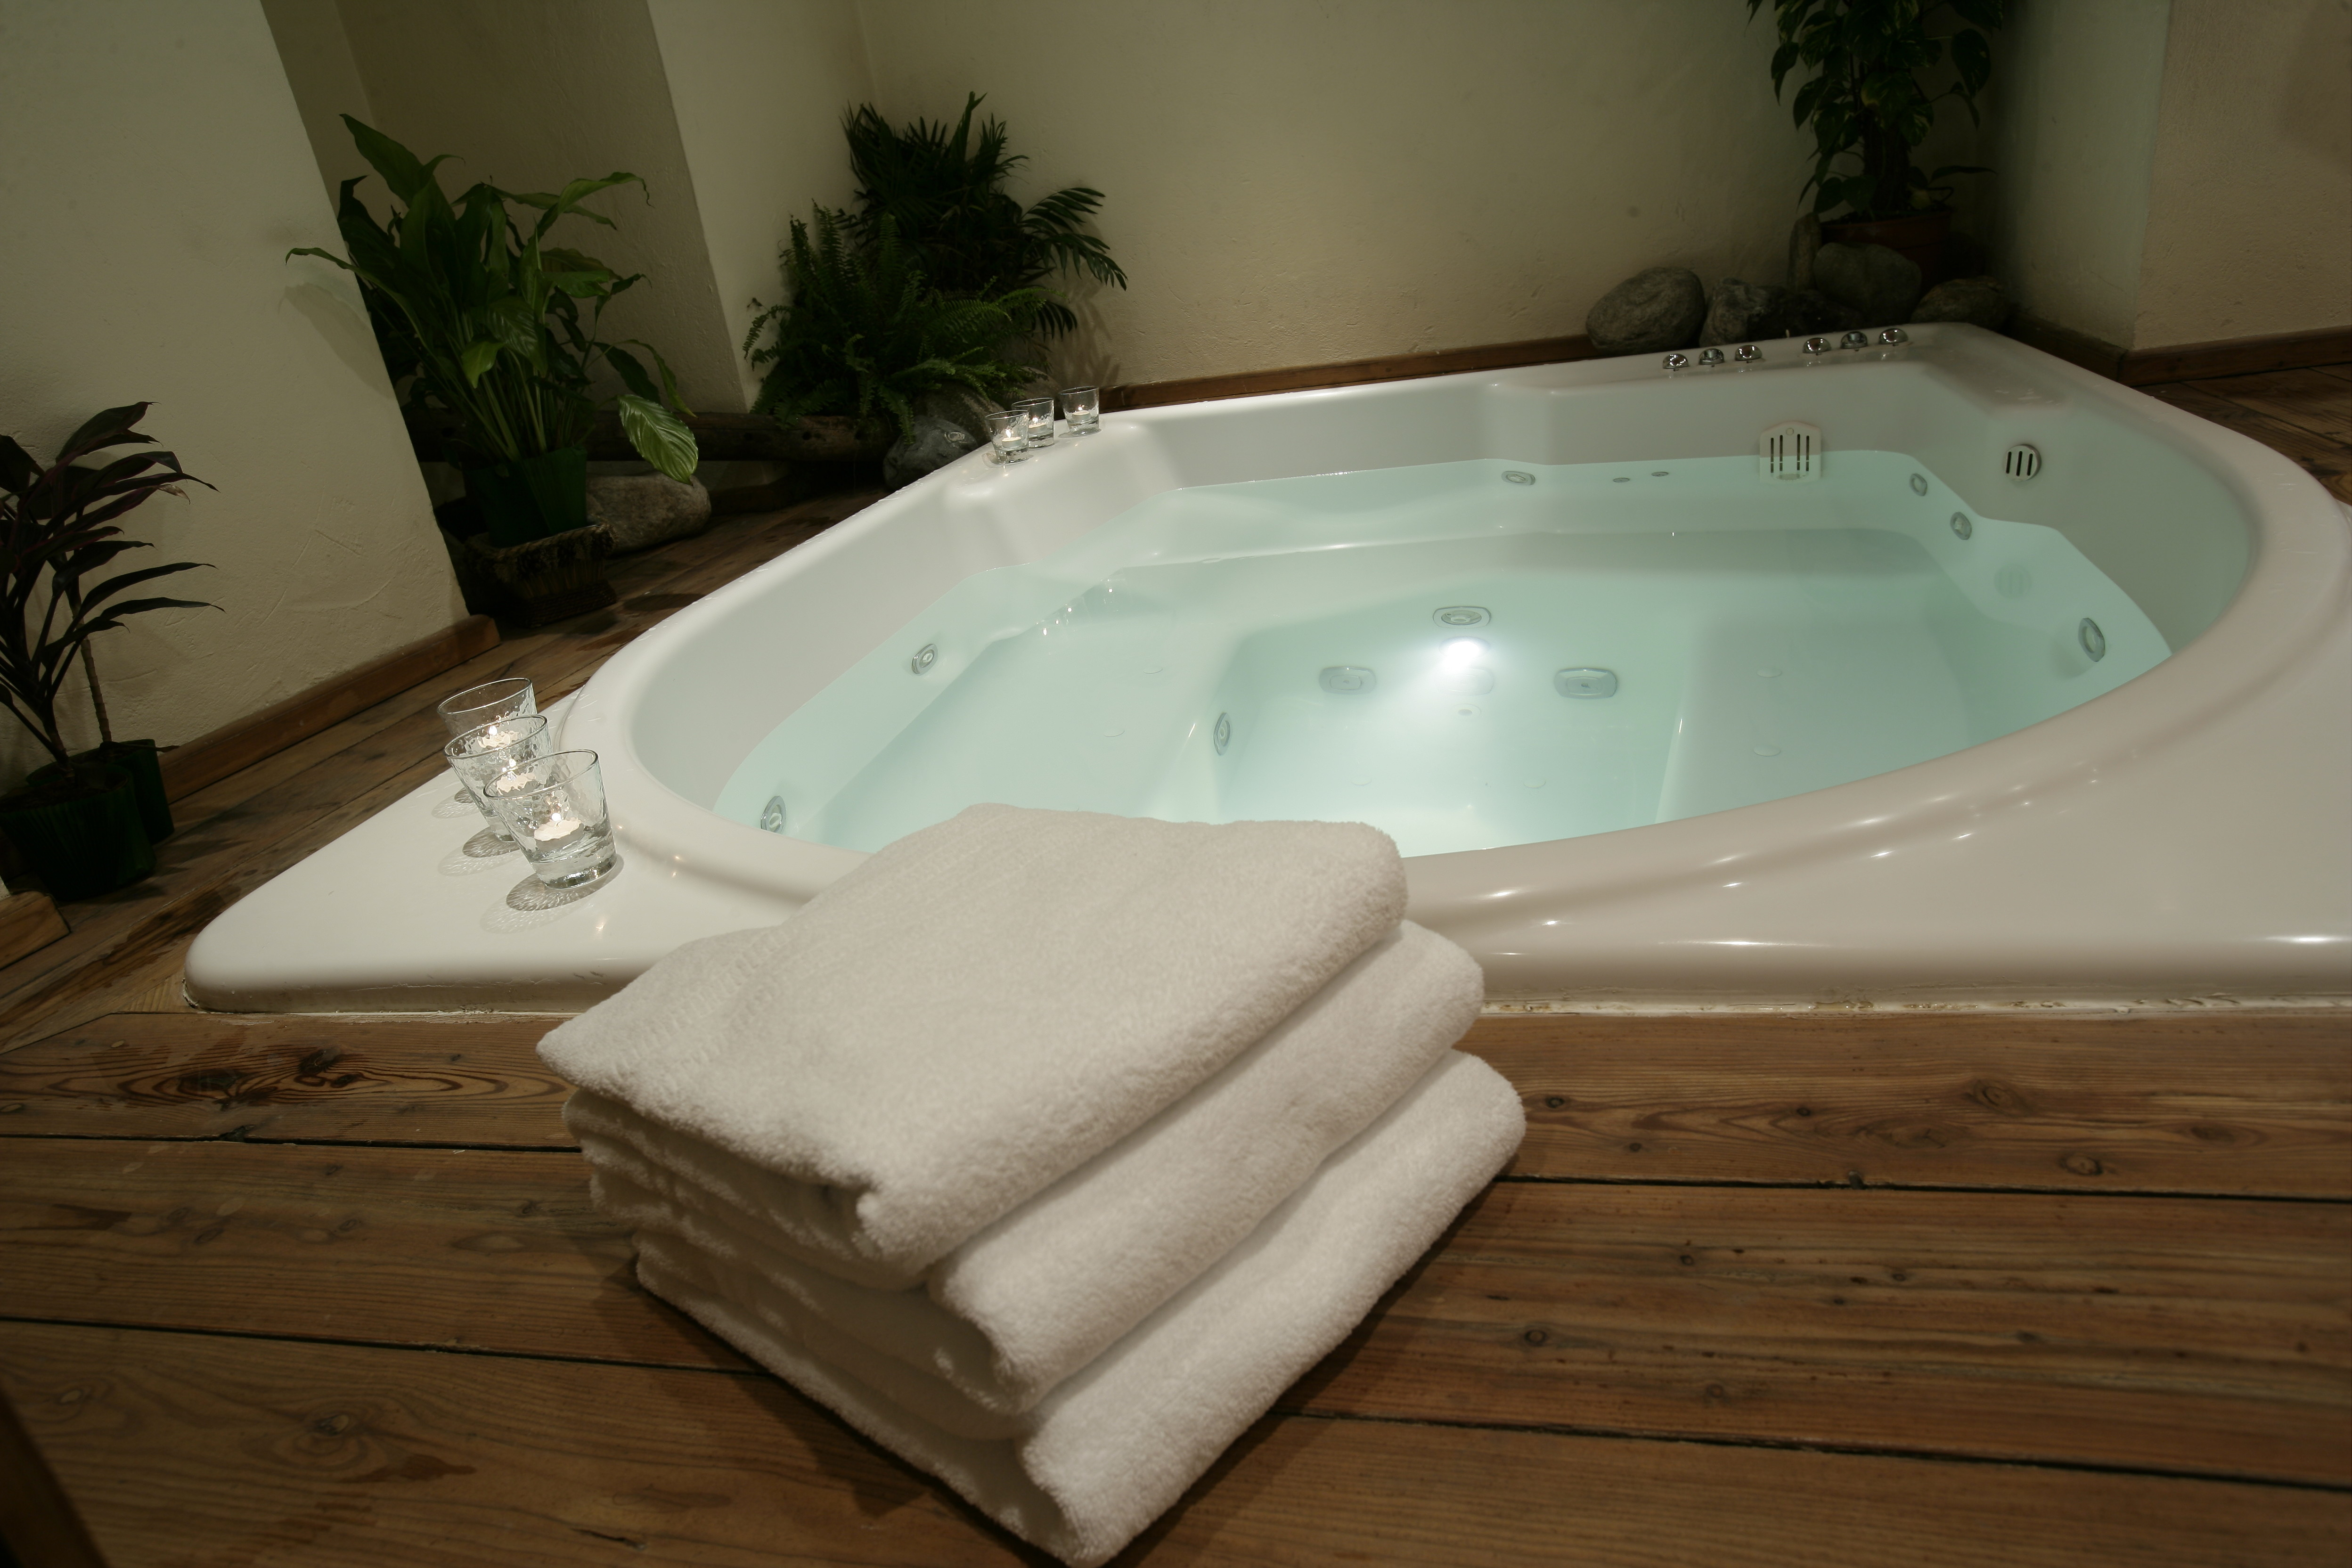 Jet Tub For Bathroom Oodles Of Bubbles Fun And Romance